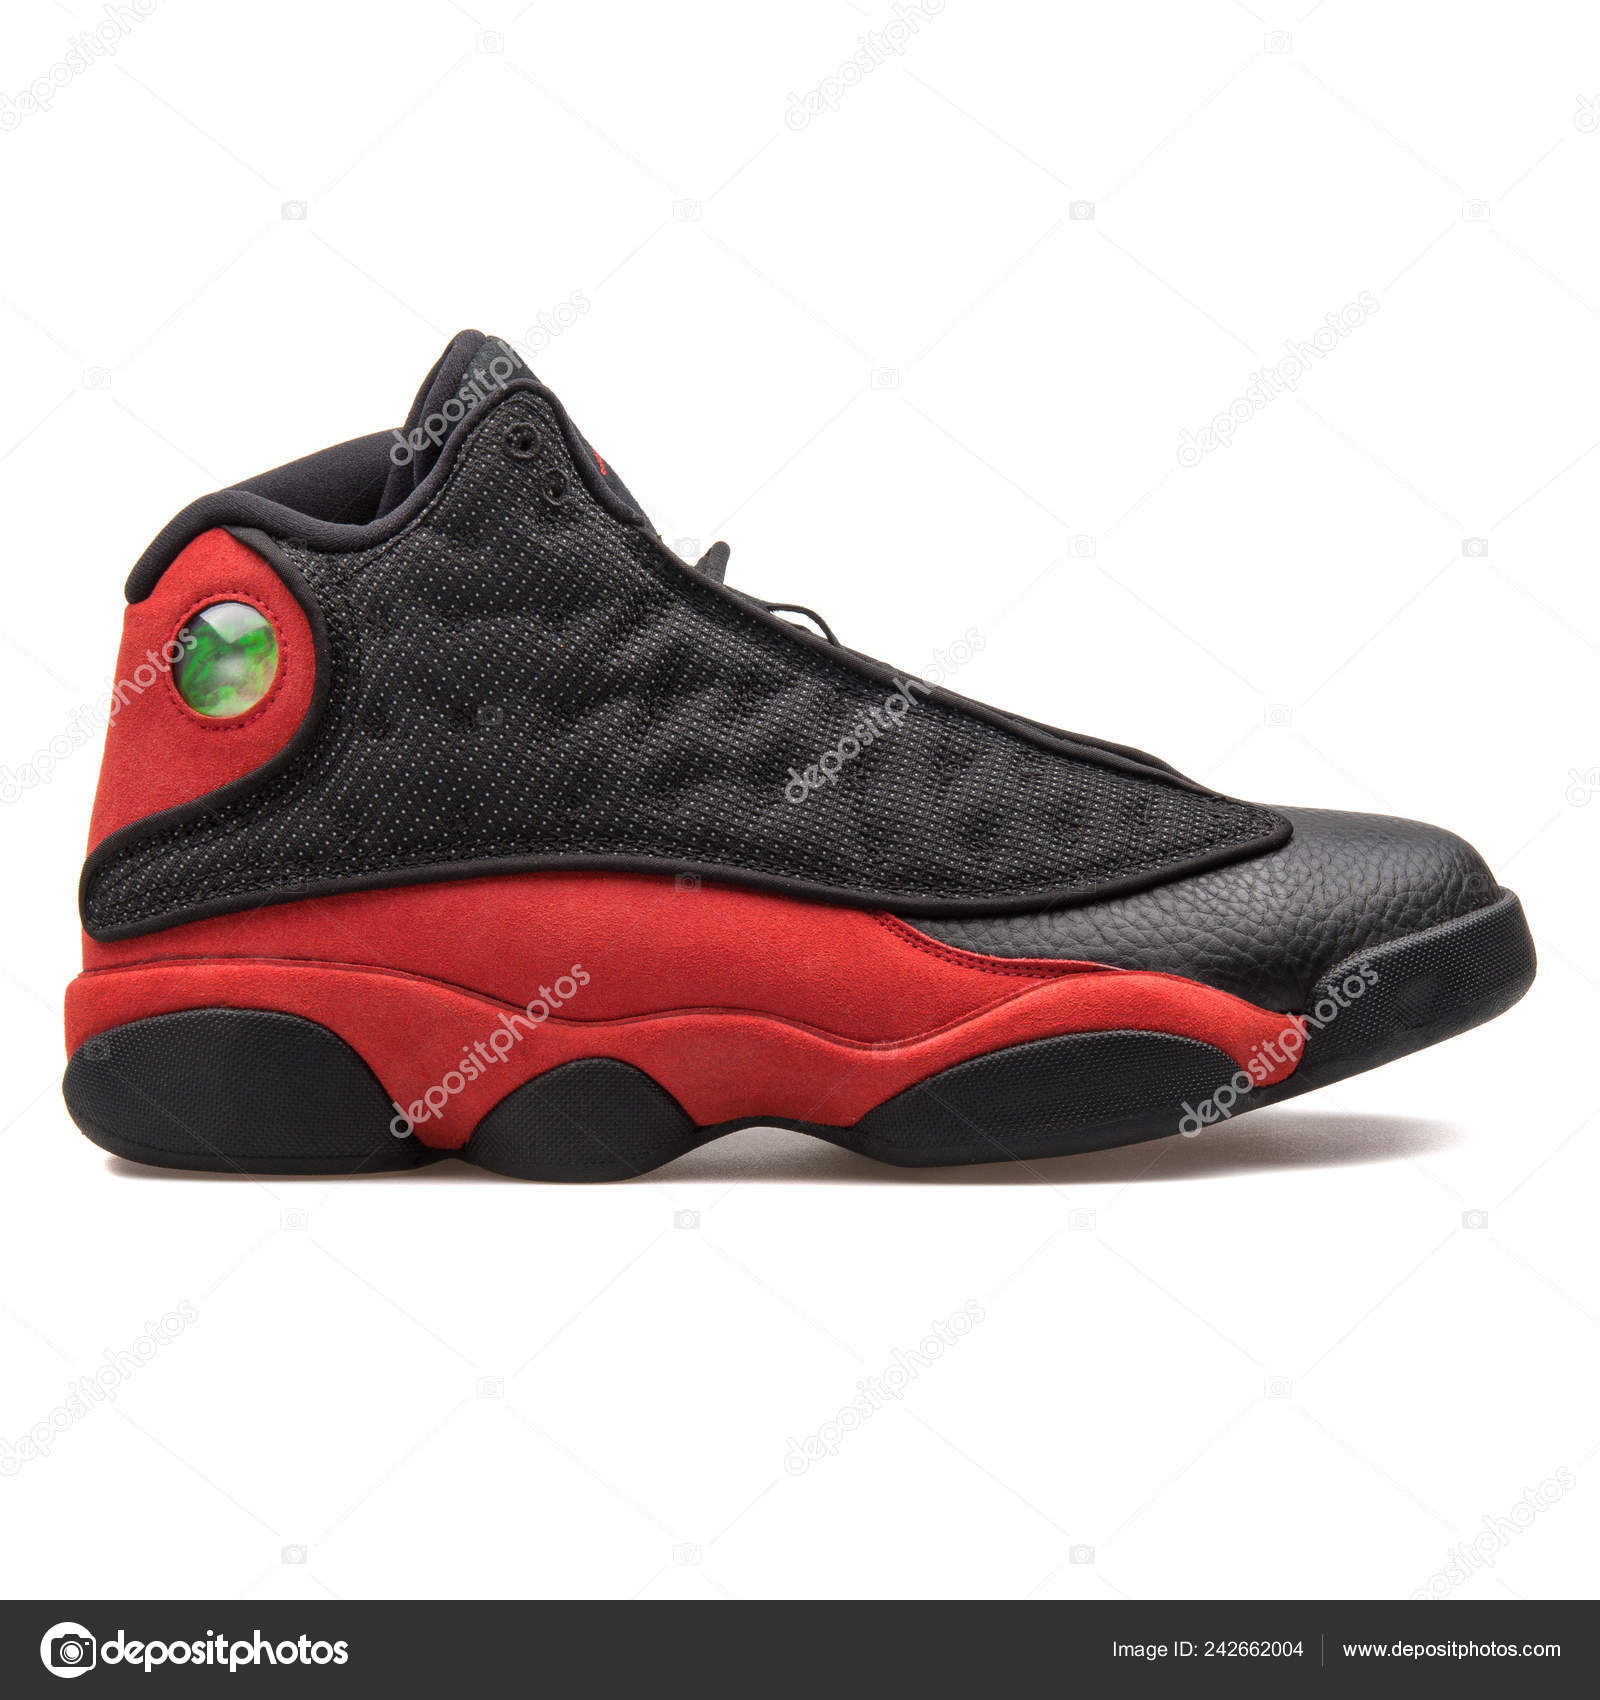 new products a2f6a 4744e Vienna Austria August 2017 Nike Air Jordan Retro Black Red ...